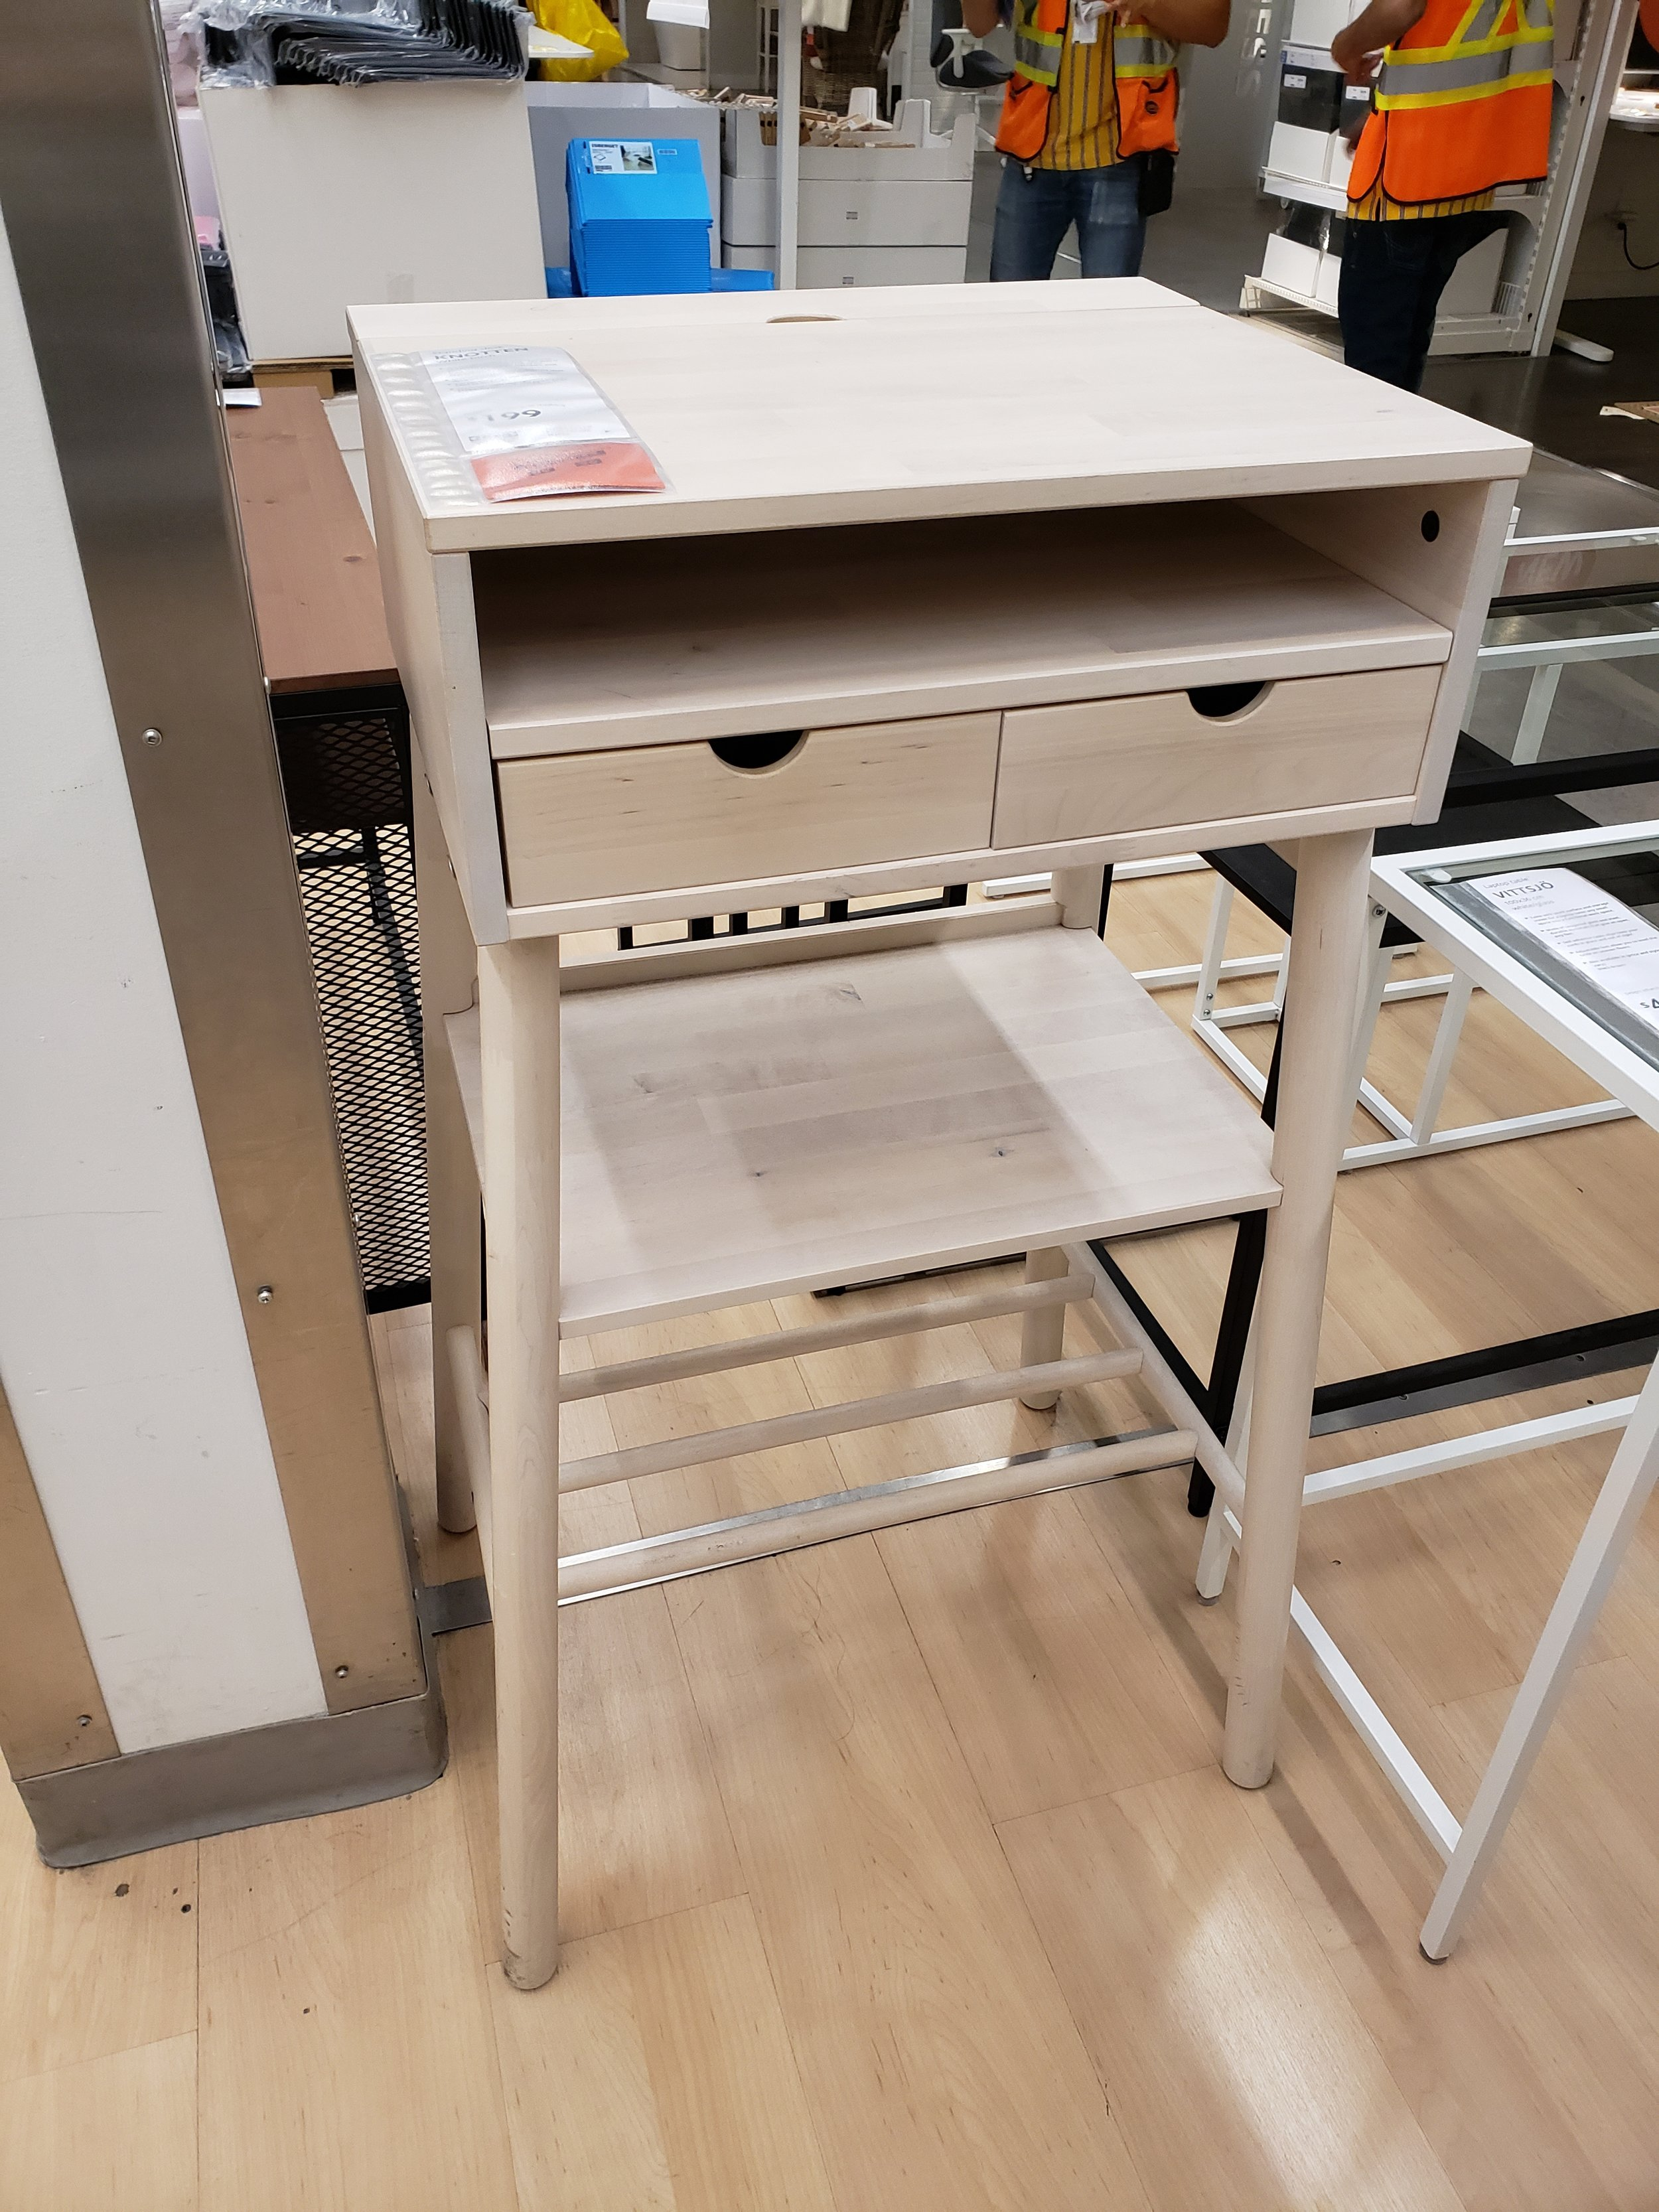 - This standing desk is such a perfect size for a small foyer, or even a corner nook where you want to do a bit of work while standing. The design is incredible with space for wires, odds and ends, and even a spot to put your foot up on. See how versatile it is here.